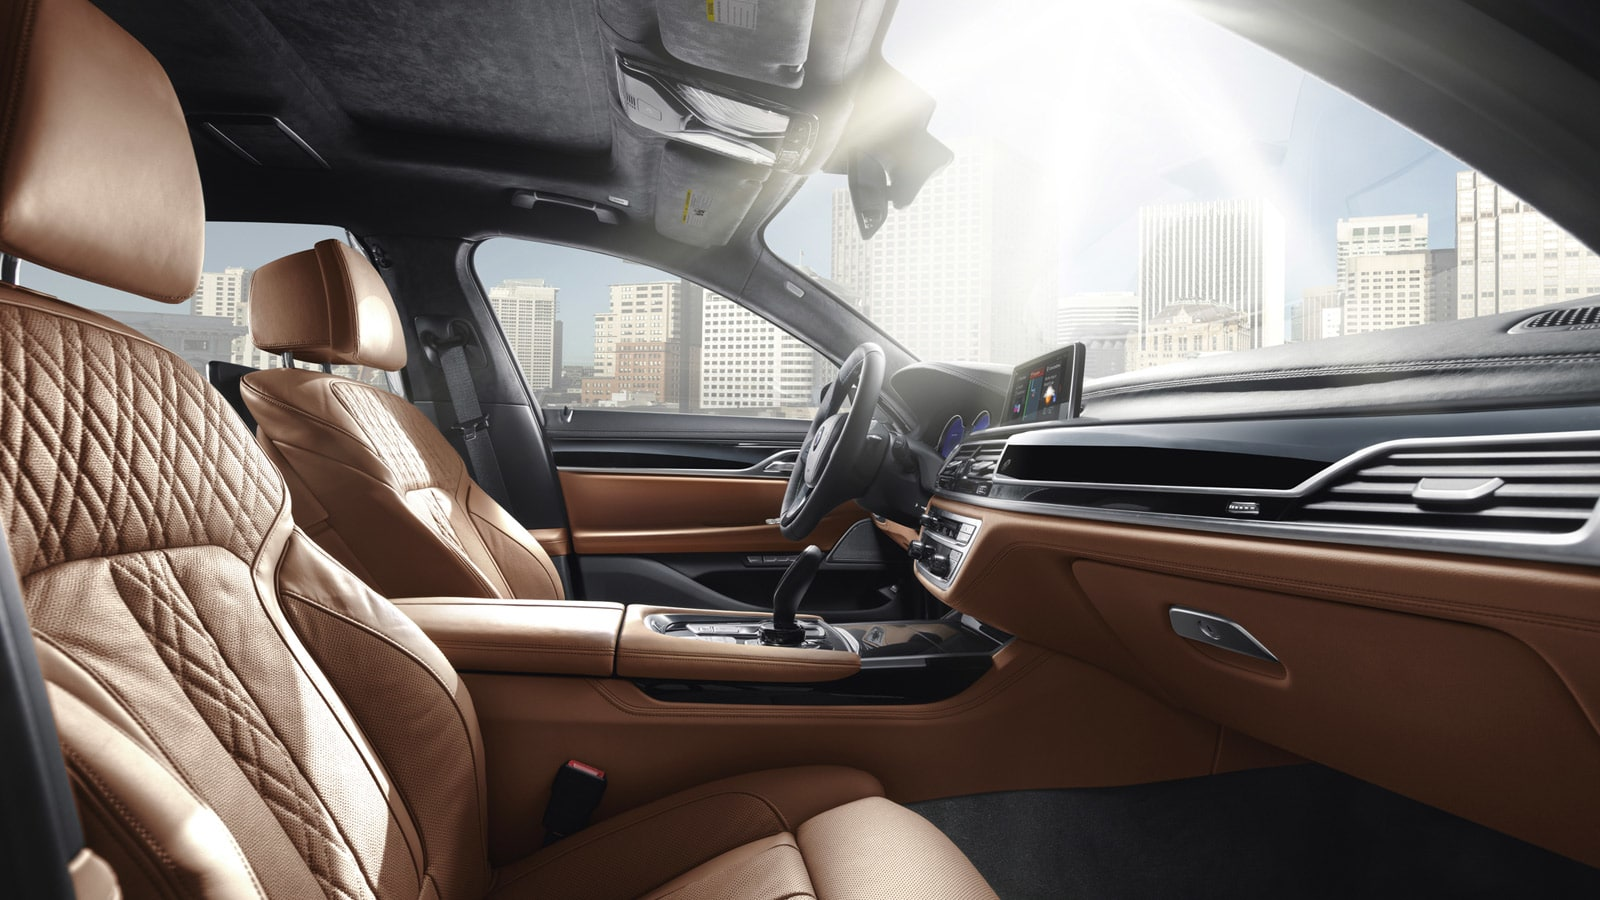 Interior of the 2019 BMW 7 Series